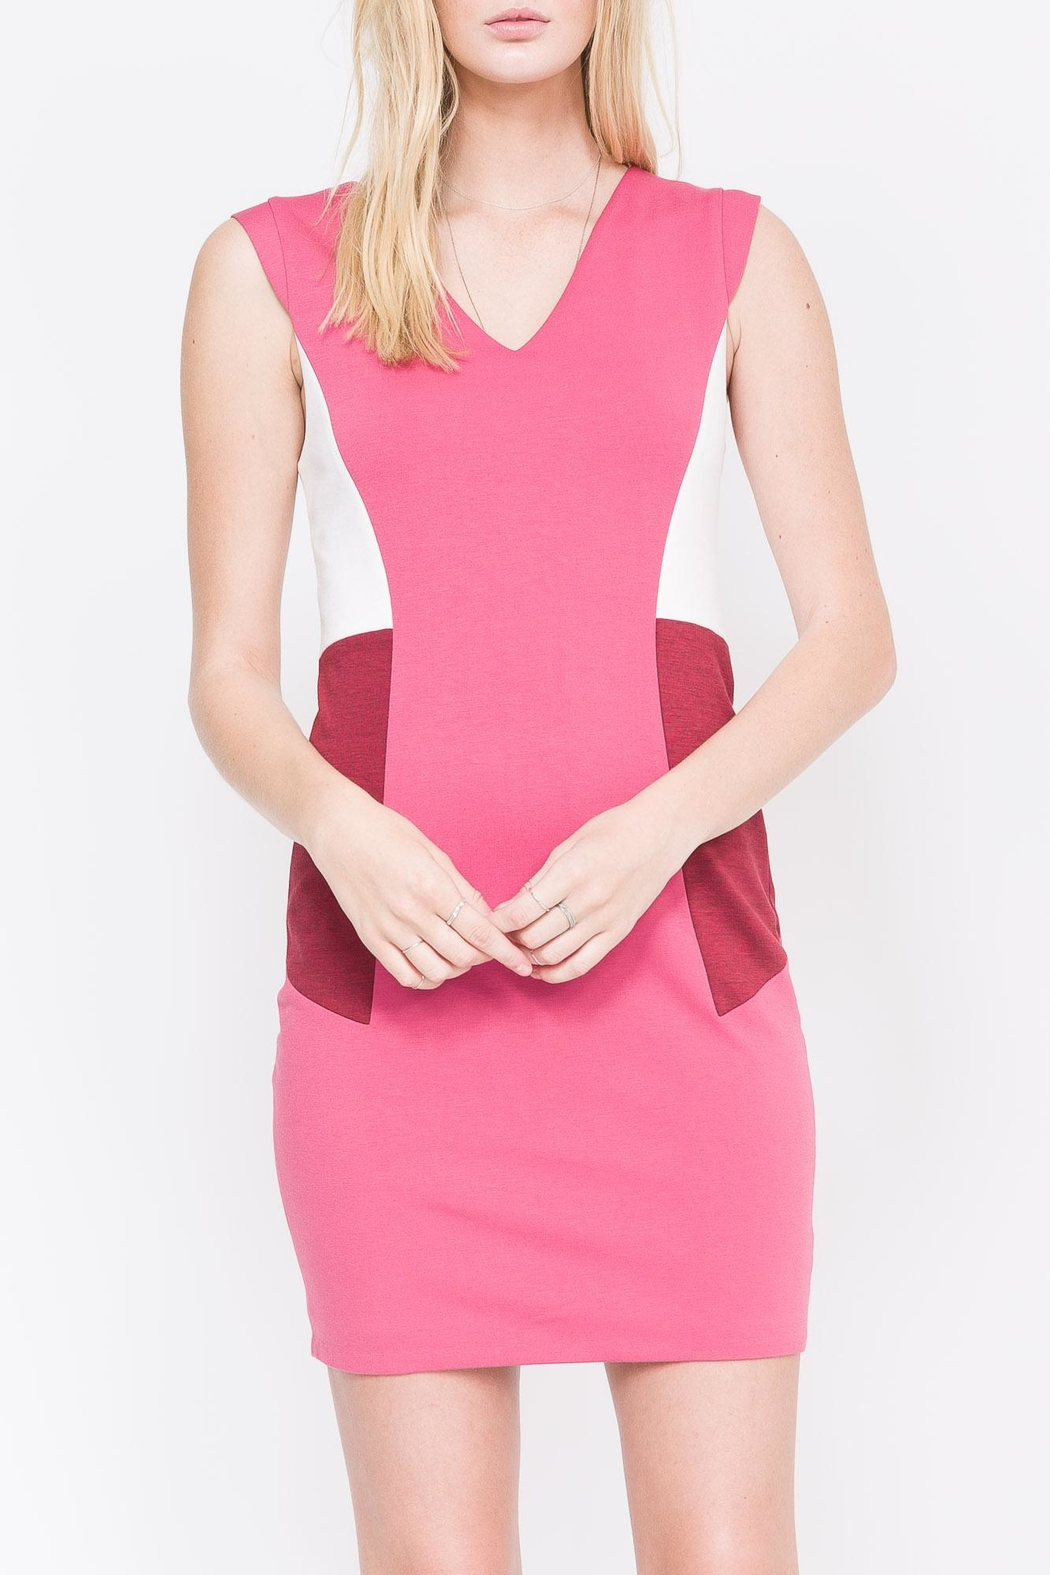 QUINN Nerissa Color-Blocked Dress - Main Image